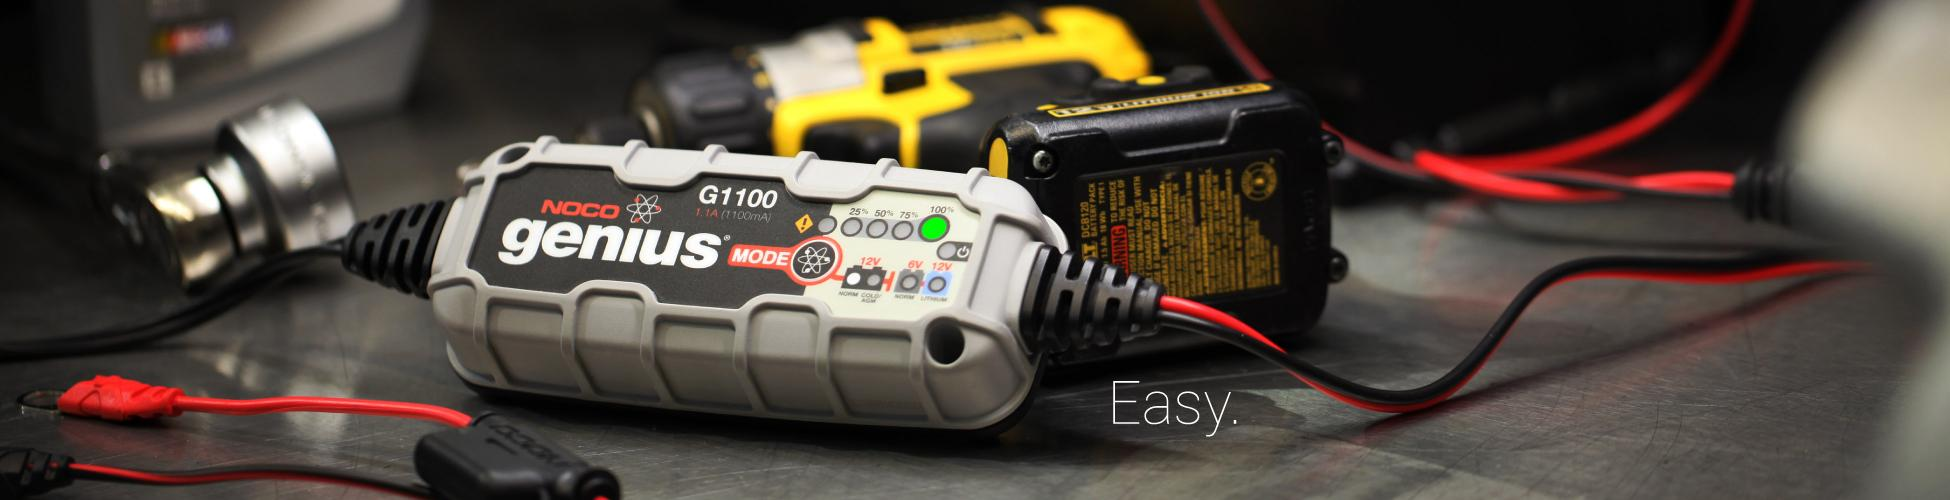 noco-g1100-12v-motorcycle-battery-trickle-charger-maintainer-for-easy-plug-n-play-frankies.jpg